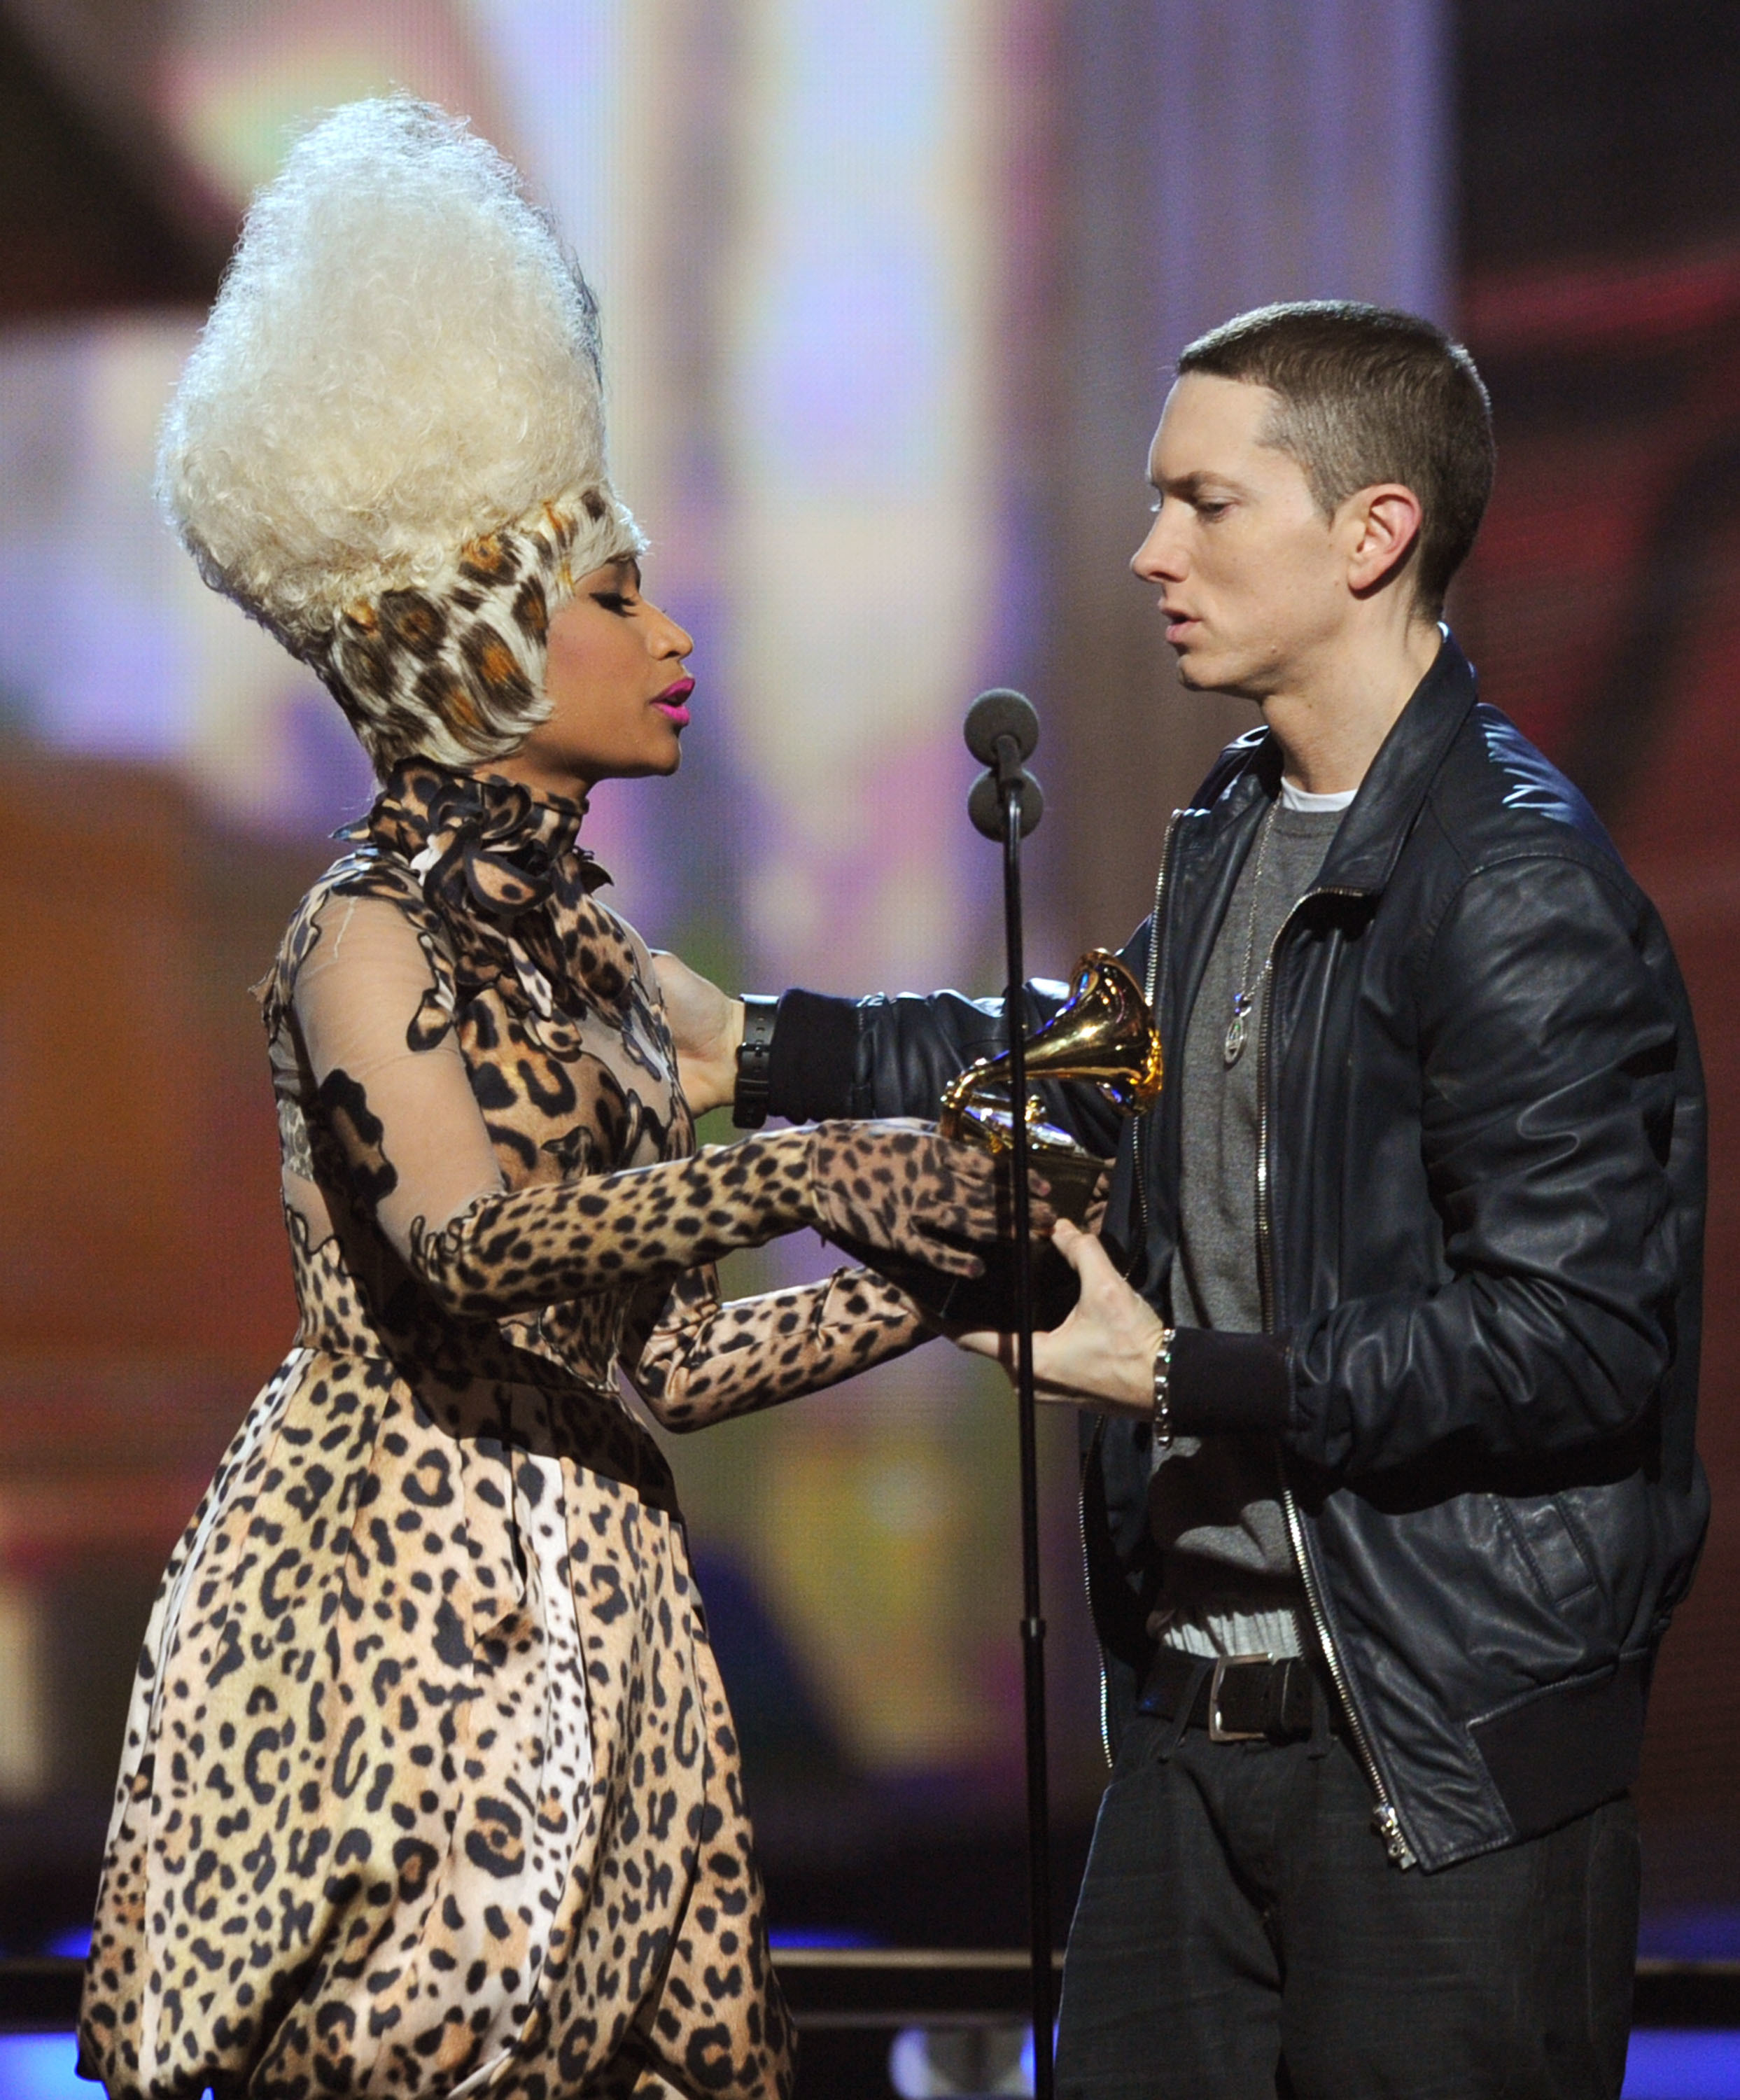 """Nicki Minaj presents Eminem with the best rap album award for """"Recovery"""" during the 53rd Annual Grammy Awards at the Staples Center in Los Angeles on Feb. 13, 2011."""